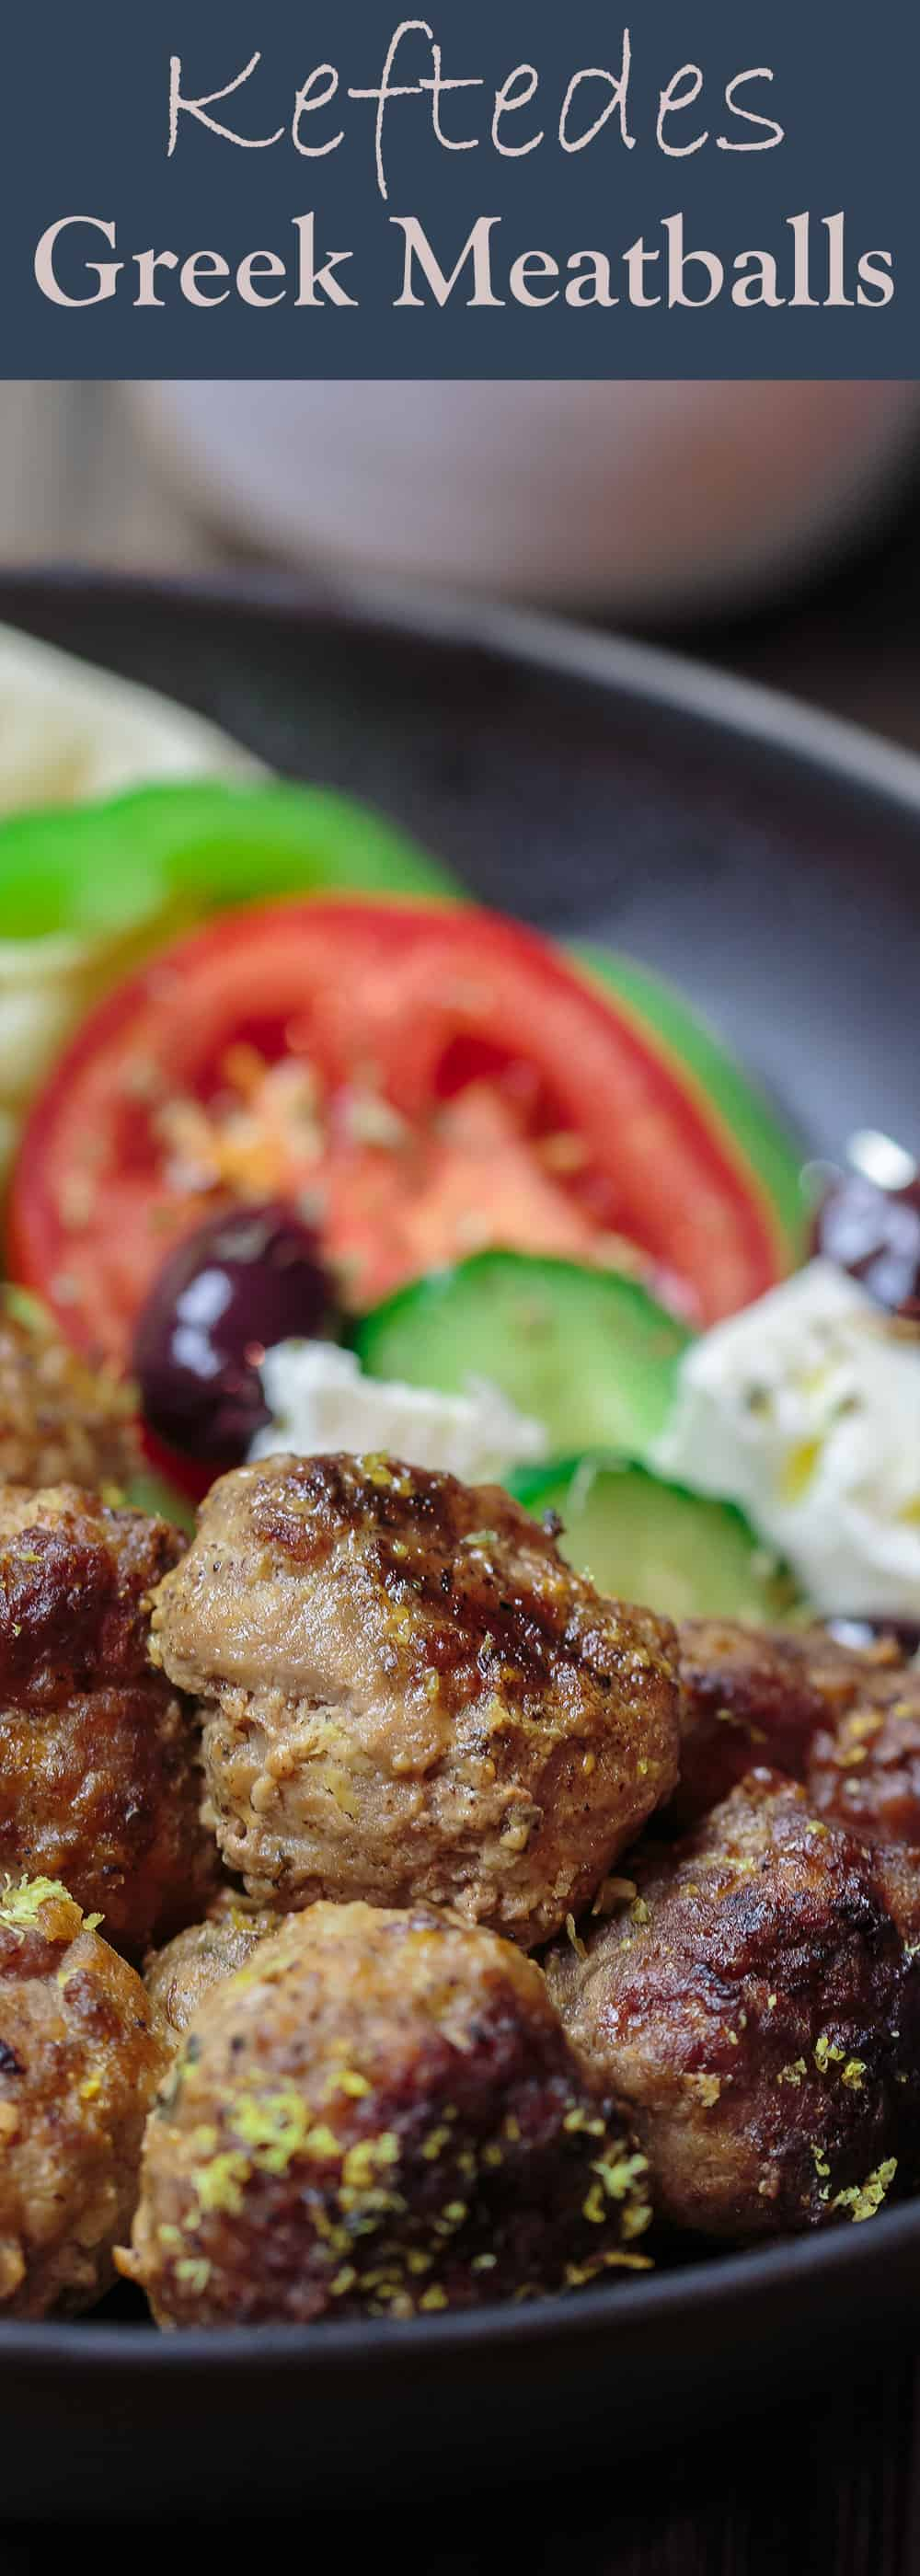 Keftedes greek meatballs with a lemony sauce keftedes greek meatballs recipe the mediterranean dish best greek meatballs ever spiced with forumfinder Choice Image